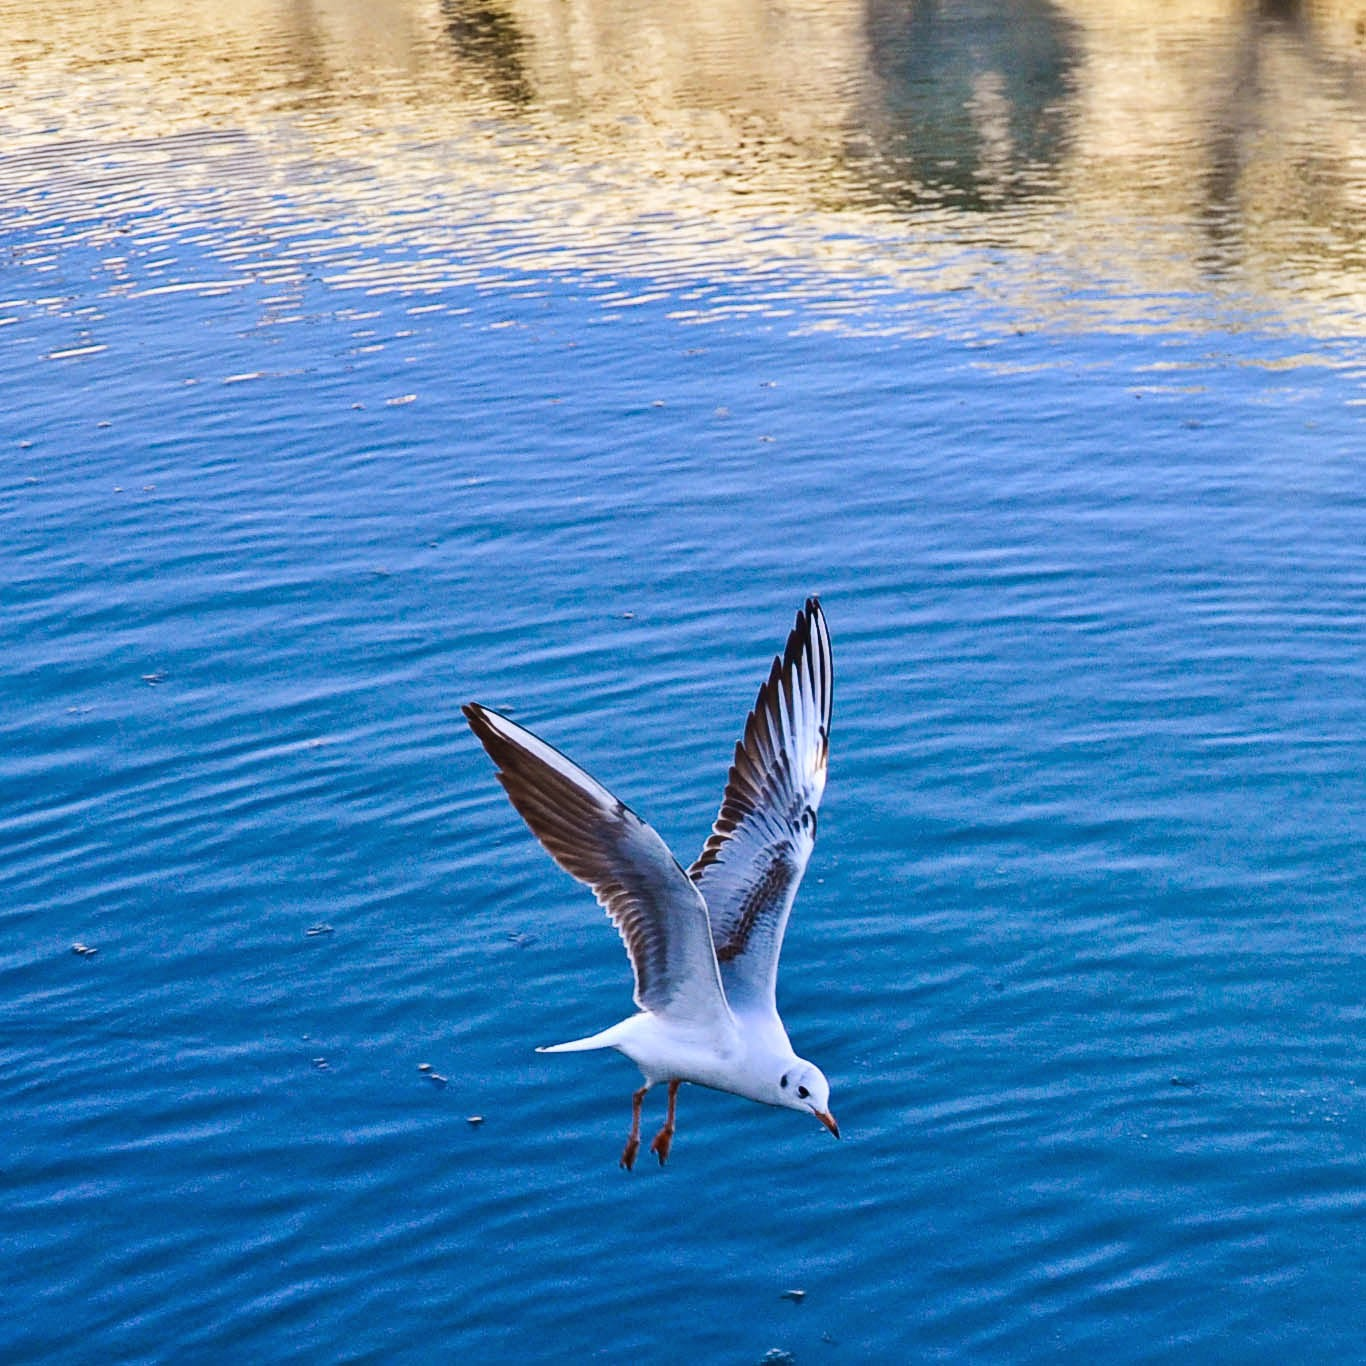 A seagull flying above Prato della Valle - the biggest square in Italy